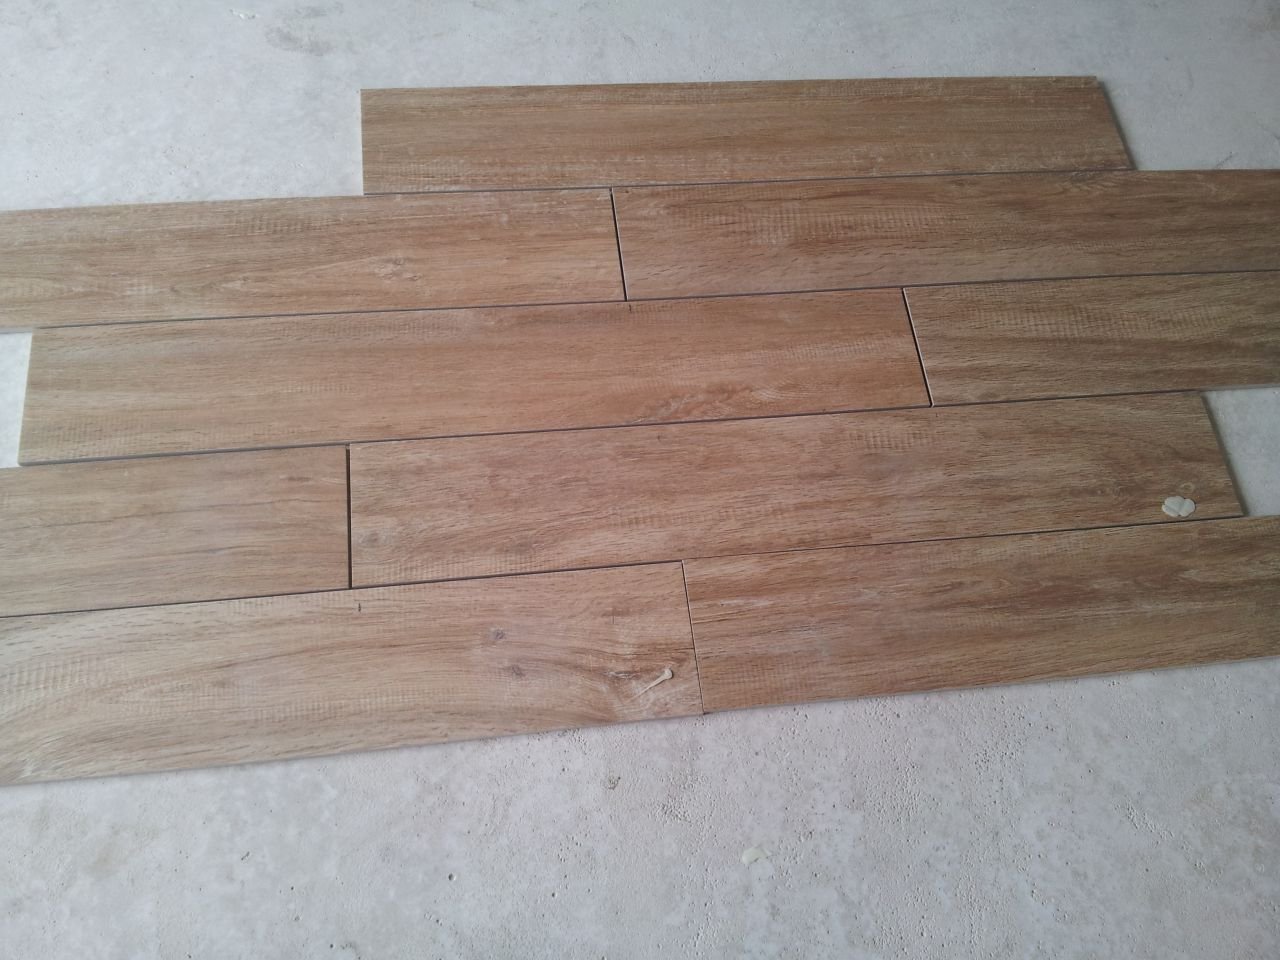 Sens et technique de pose pr carrelage imitation parquet for Pose de joint de carrelage